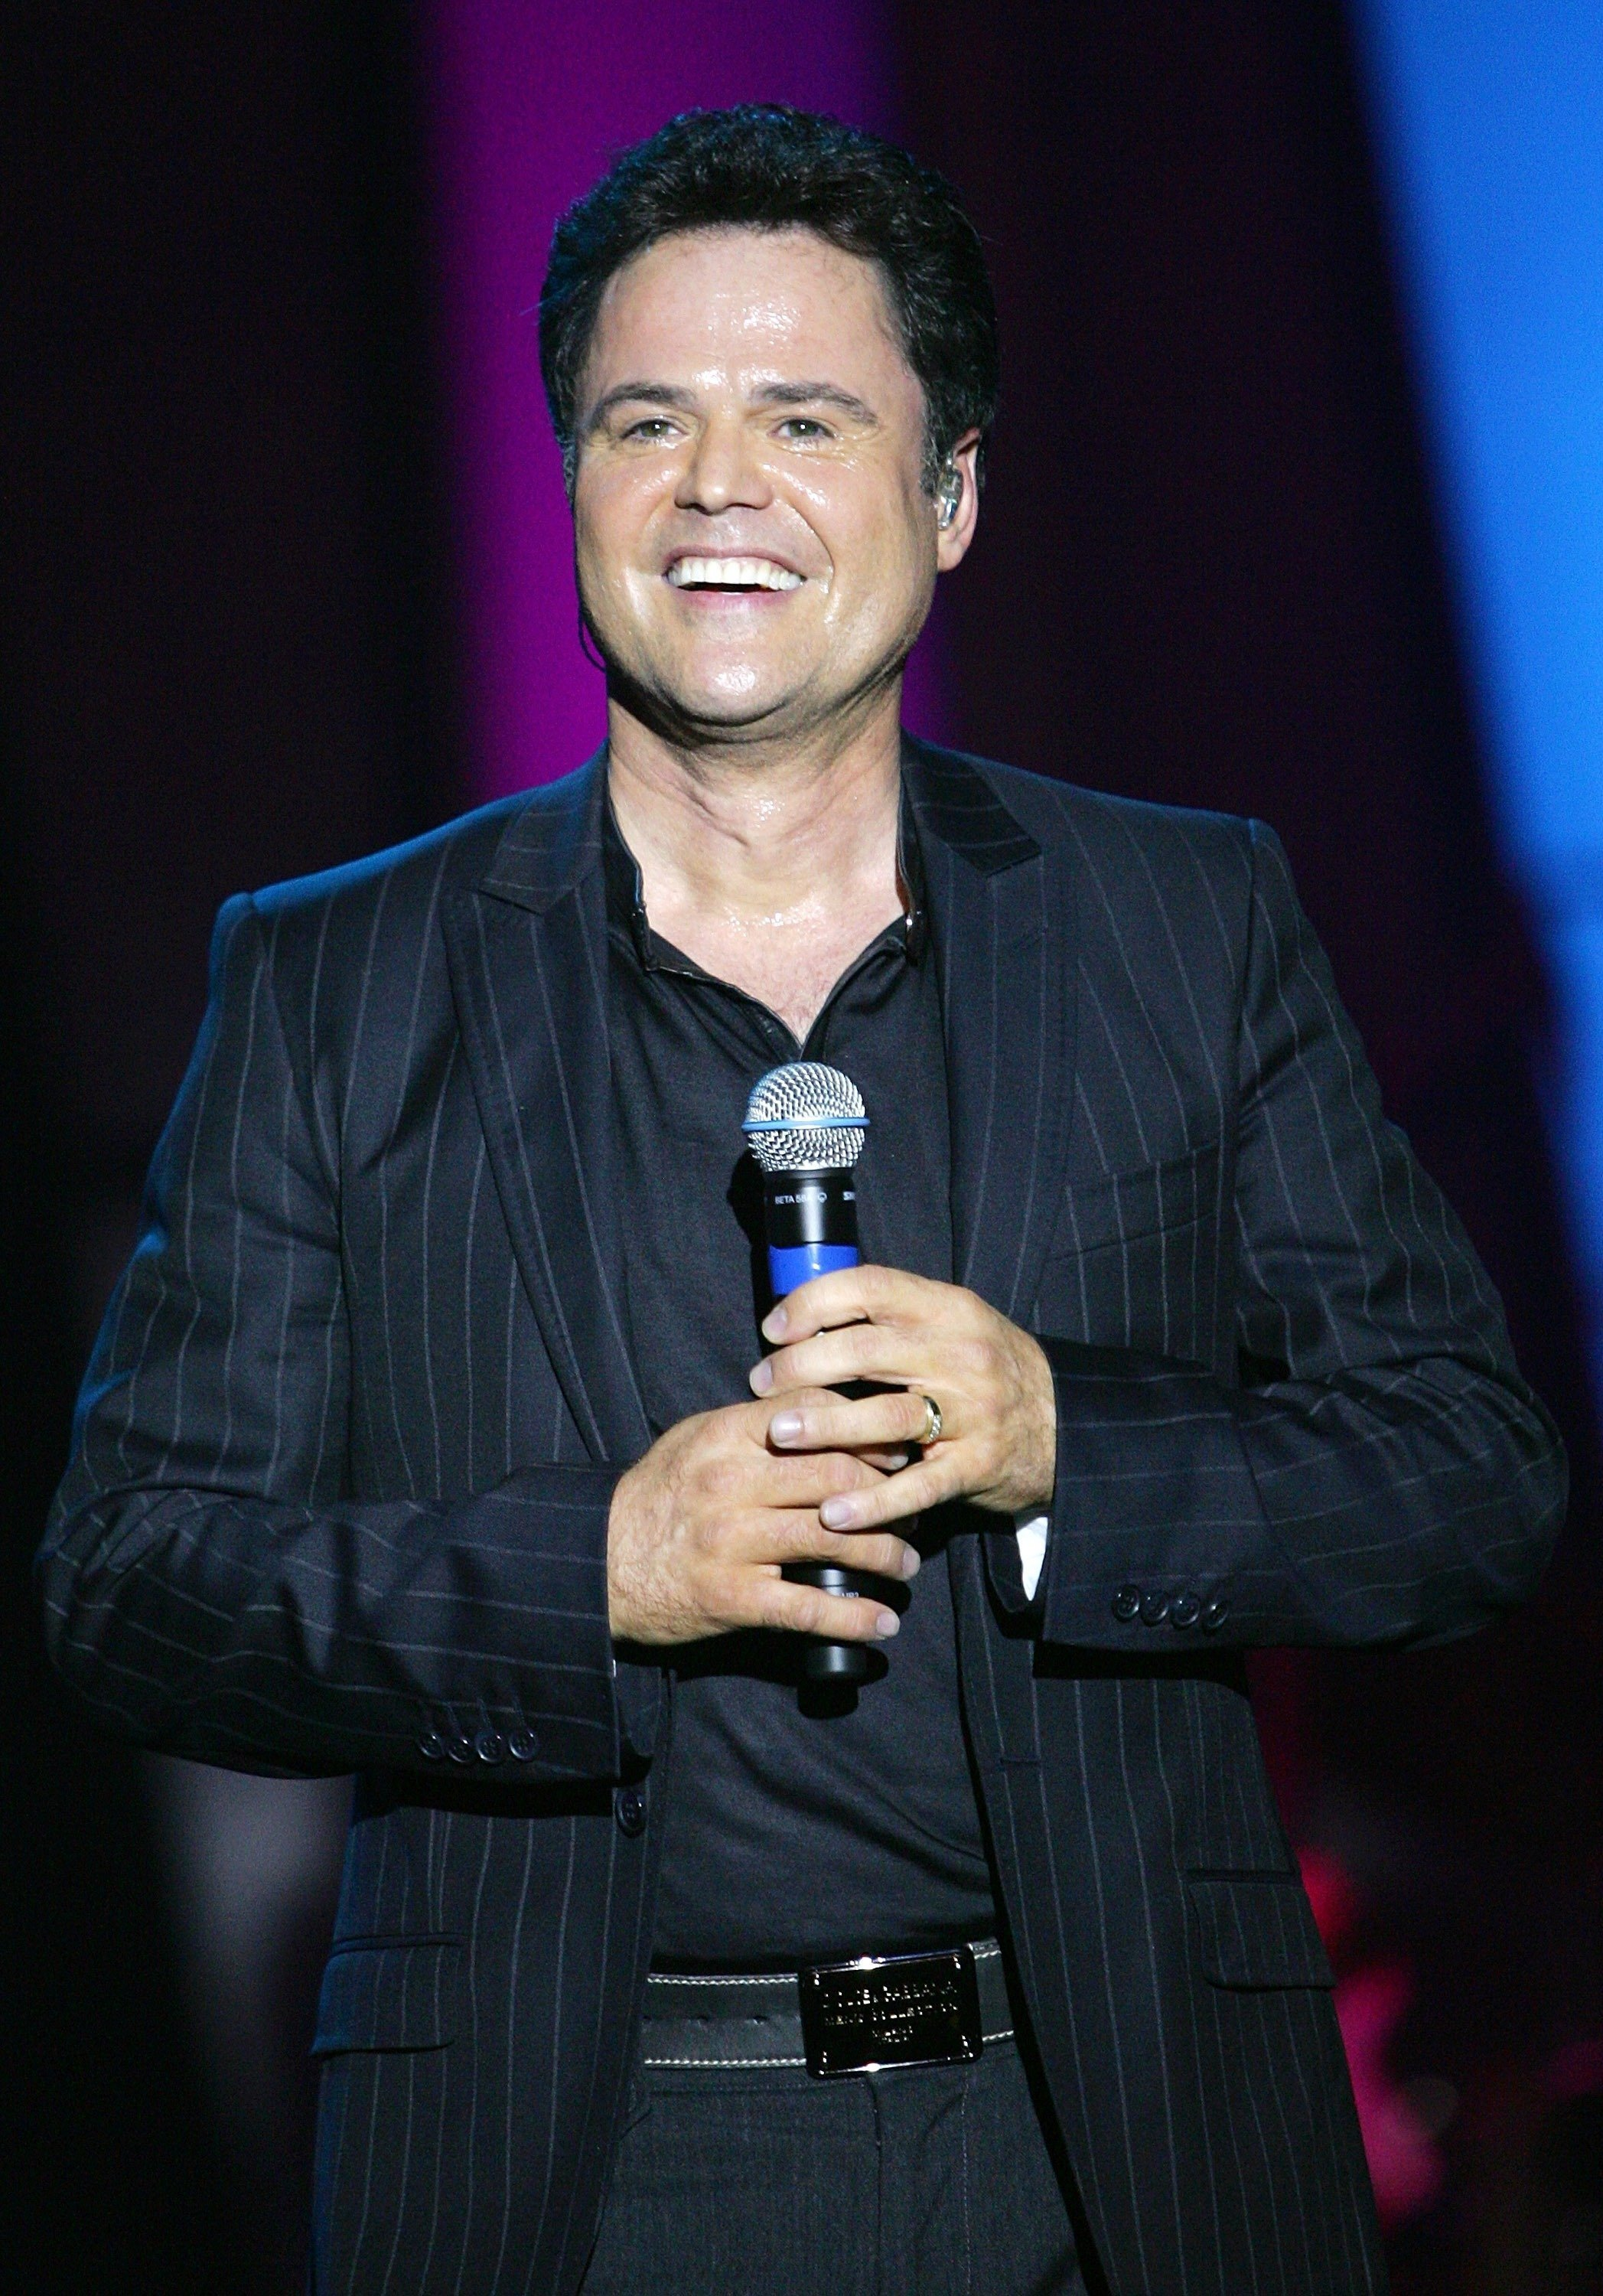 Donny Osmond am 14. August 2007 in Las Vegas, Nevada | Quelle: Getty Images